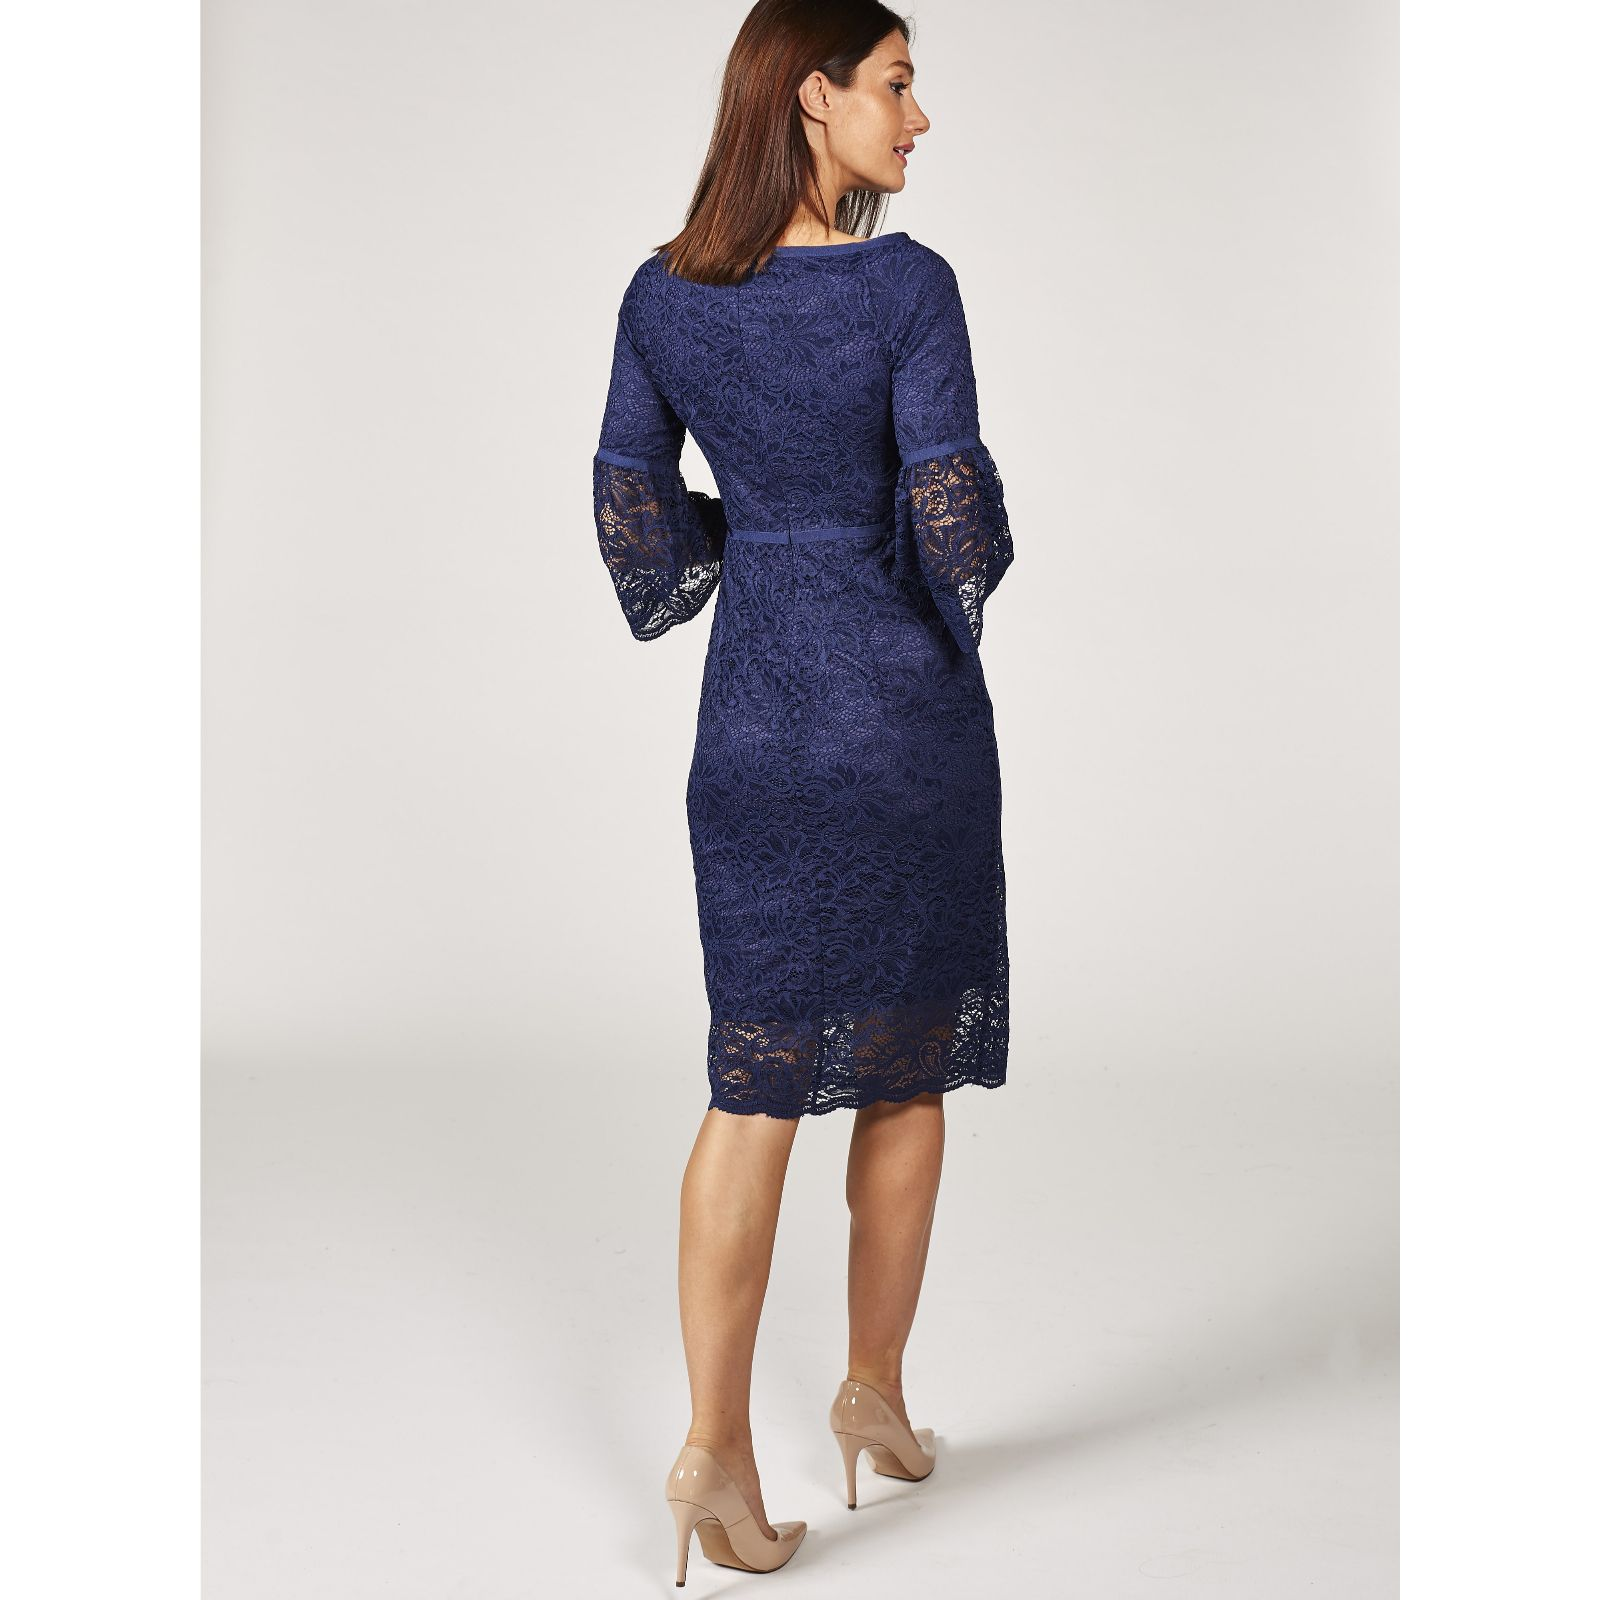 Ruth Langsford Fluted Sleeve Lace Dress Qvc Uk